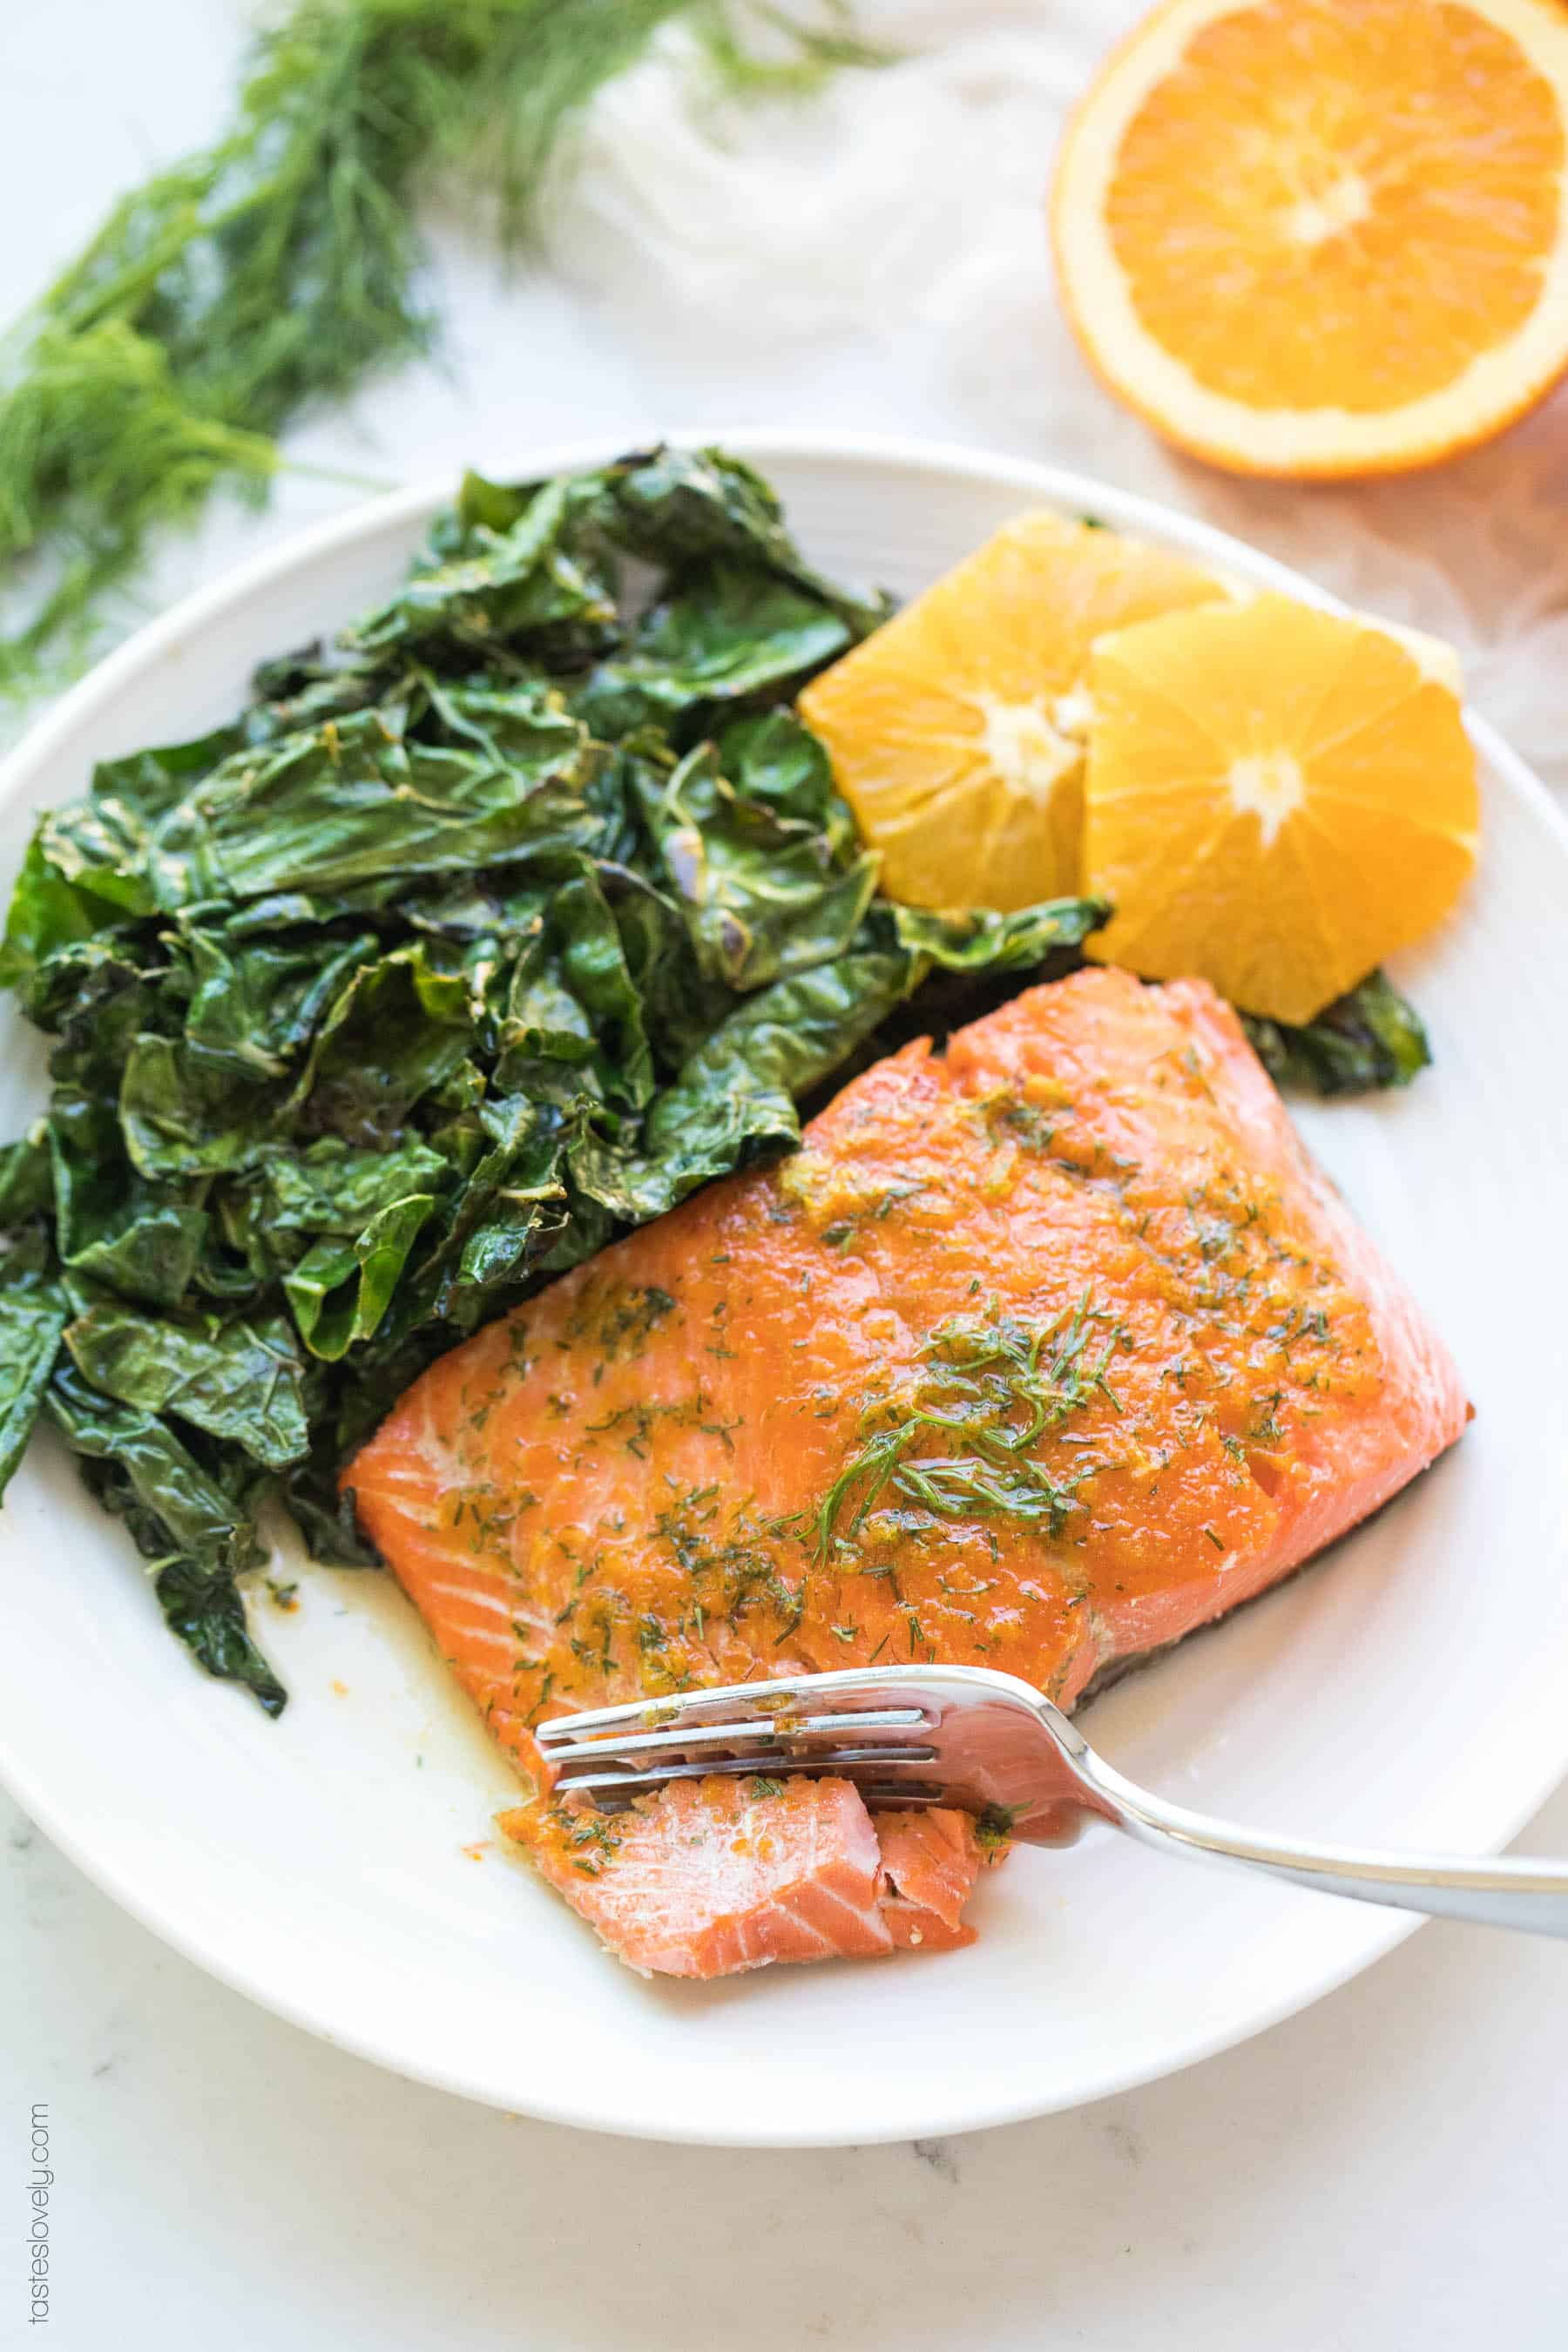 Salmon with oranges and kale and butter